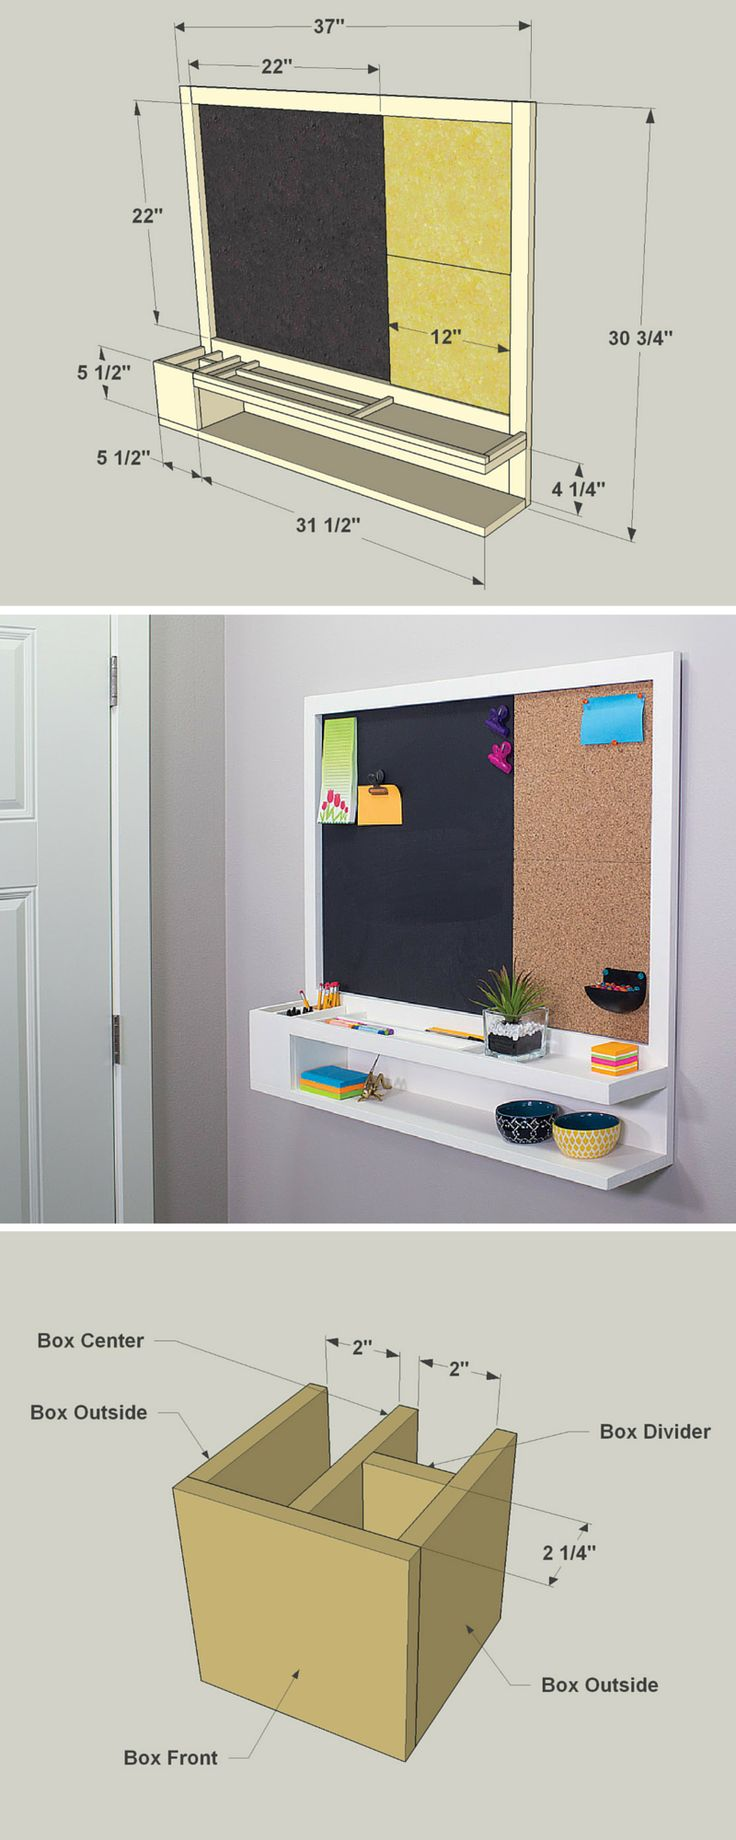 Make use of a blank wall in your entryway or kitchen with a message center that will keep the whole family organized and informed. It features storage, a magnetic chalkboard, and a cork board for pinning up notes. Get the free DIY plans at buildsomething.com